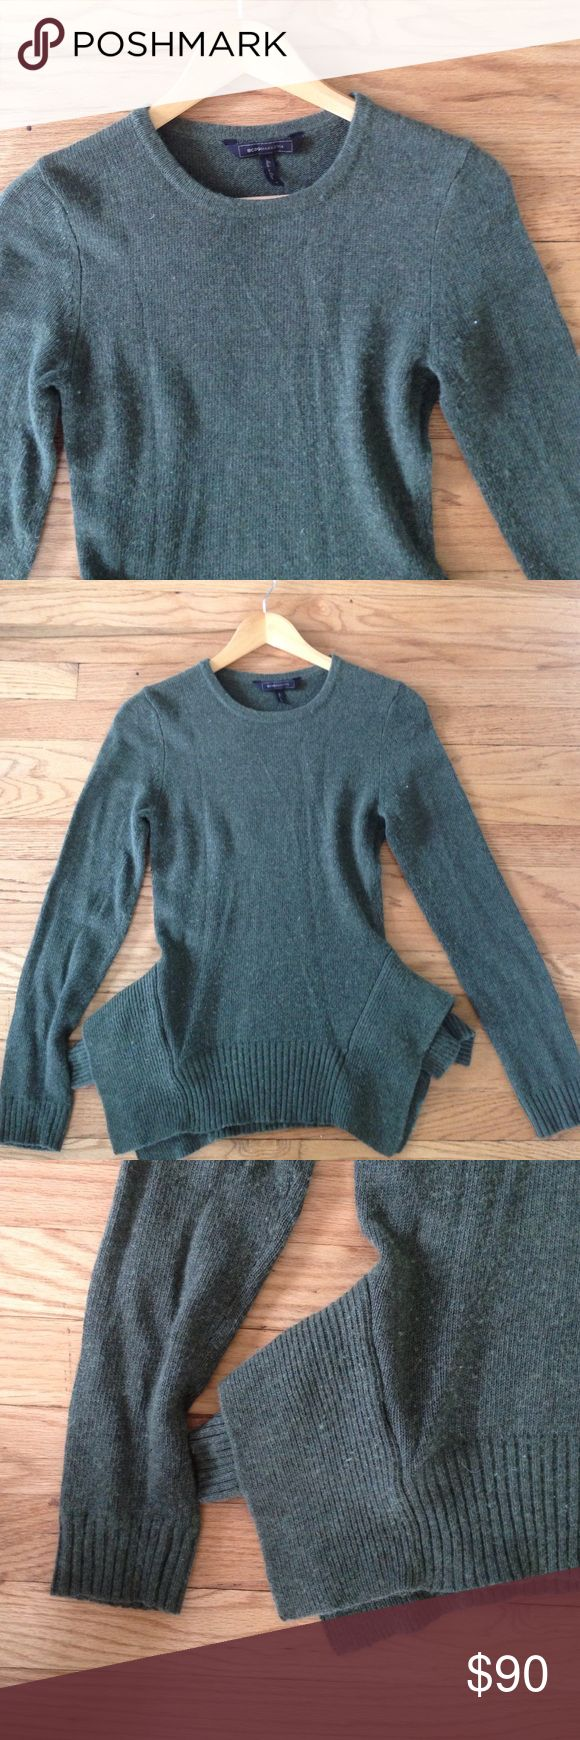 """BCBGMaxAzria Loretta Peplum Sweater Loden Small BCBGMaxAzria Loretta Peplum Sweater in Loden color. A deep olive green. Size Small, 15"""" armpit to armpit, 24"""" shoulder to hem, 24.5"""" shoulder to cuff. Viscose/nylon/cotton/lambs wool/angora/cashmere. Some light pilling. A gorgeous and unique sweater! No trades, bundle discount available! BCBGMaxAzria Sweaters Crew & Scoop Necks"""